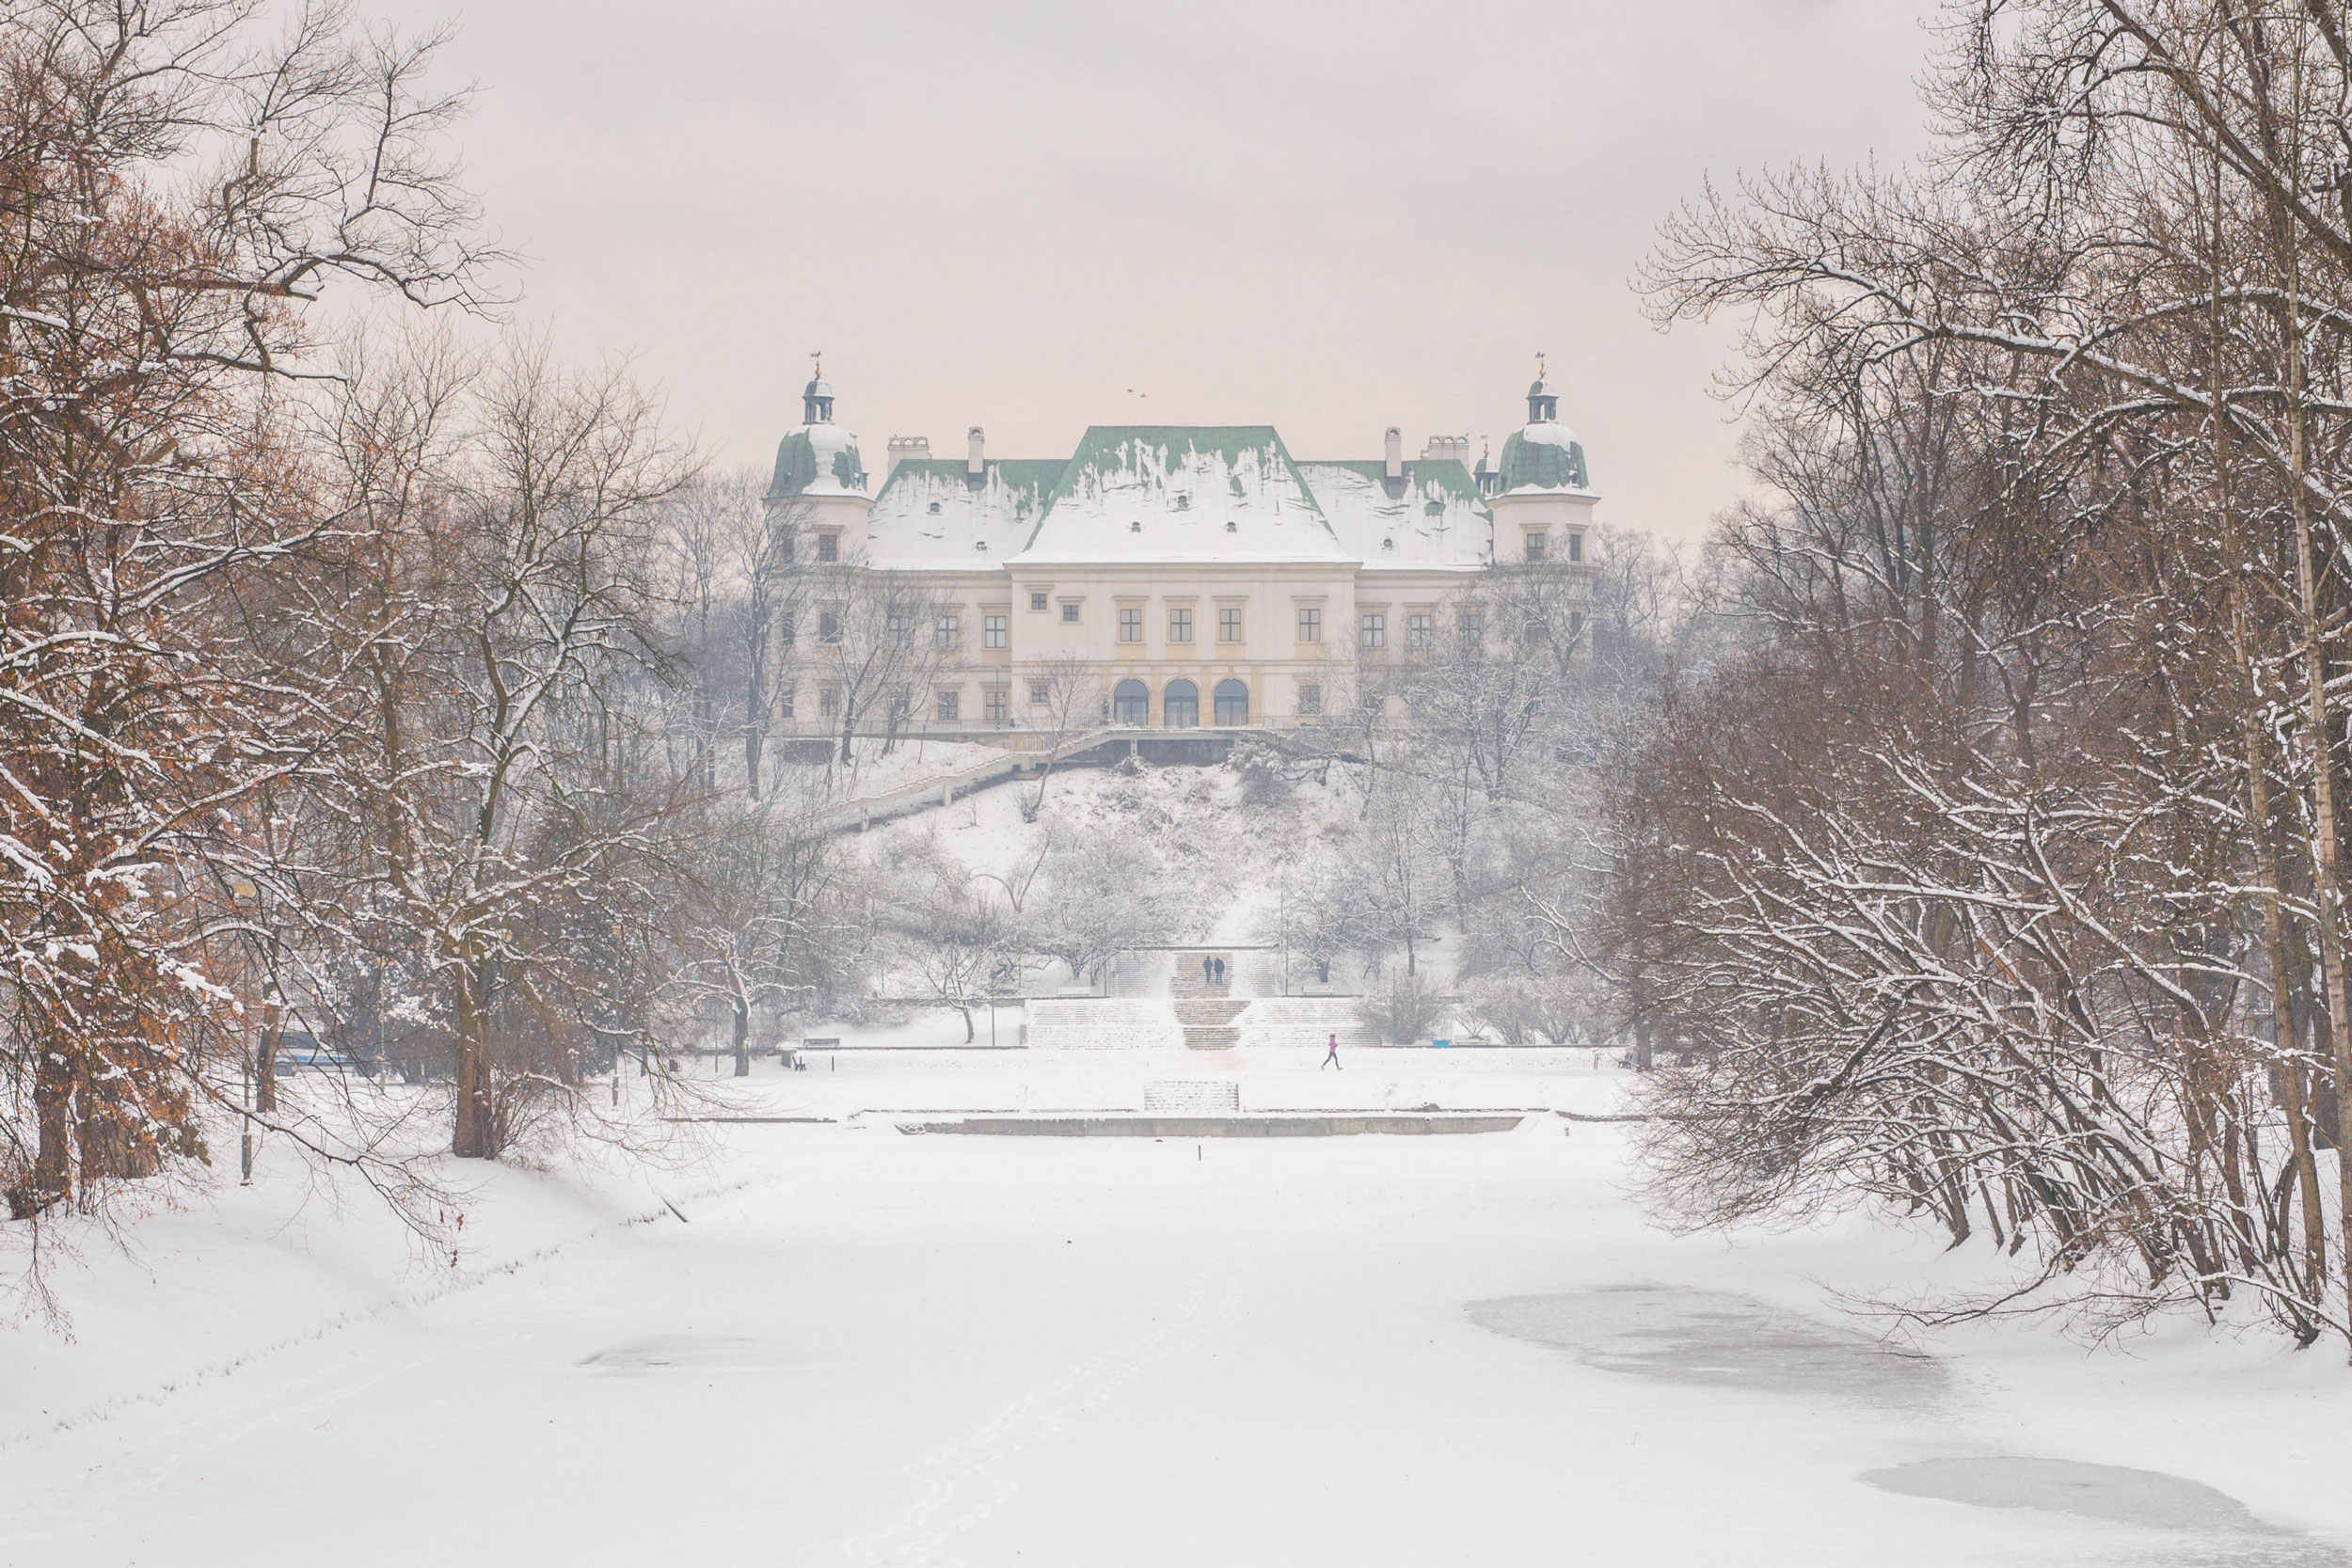 Centre for Contemporary Art at Ujazdowski Castle